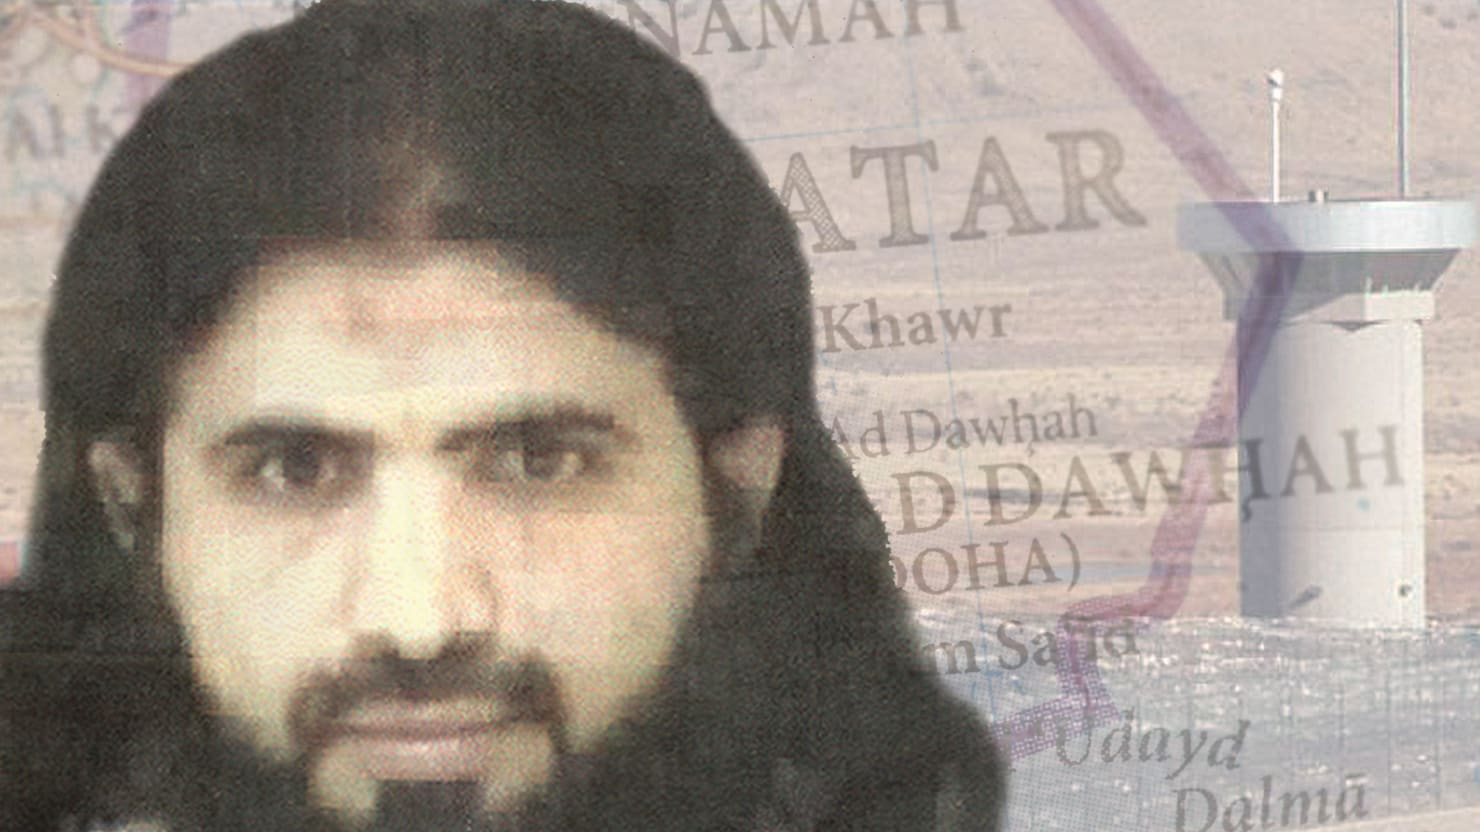 Exclusive: Freed Al Qaeda Agent Was Part of Proposed Swap for Jailed Americans